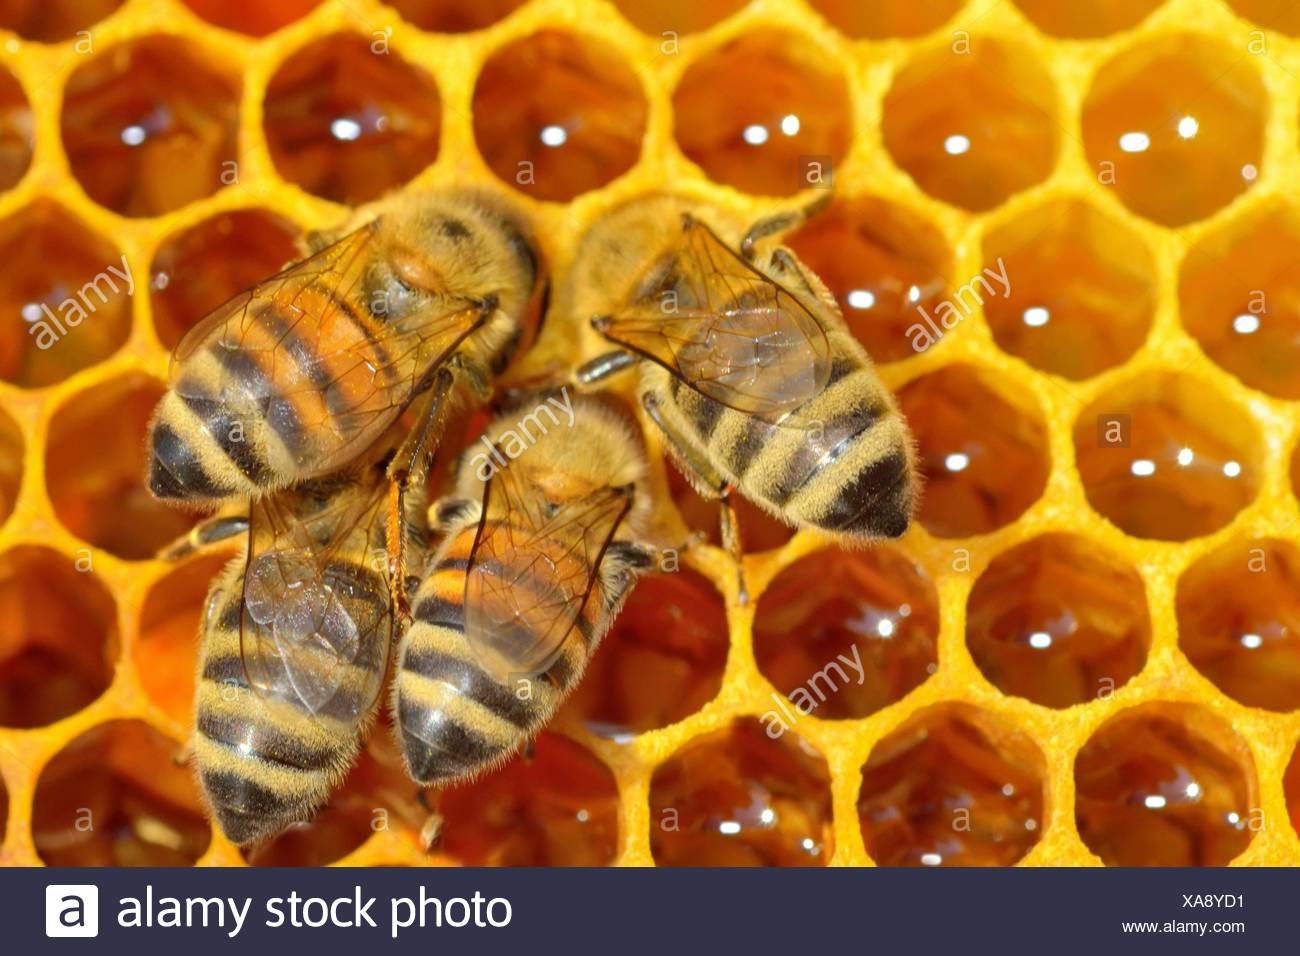 Close up view of the working bees on honey cells. - Stock Image